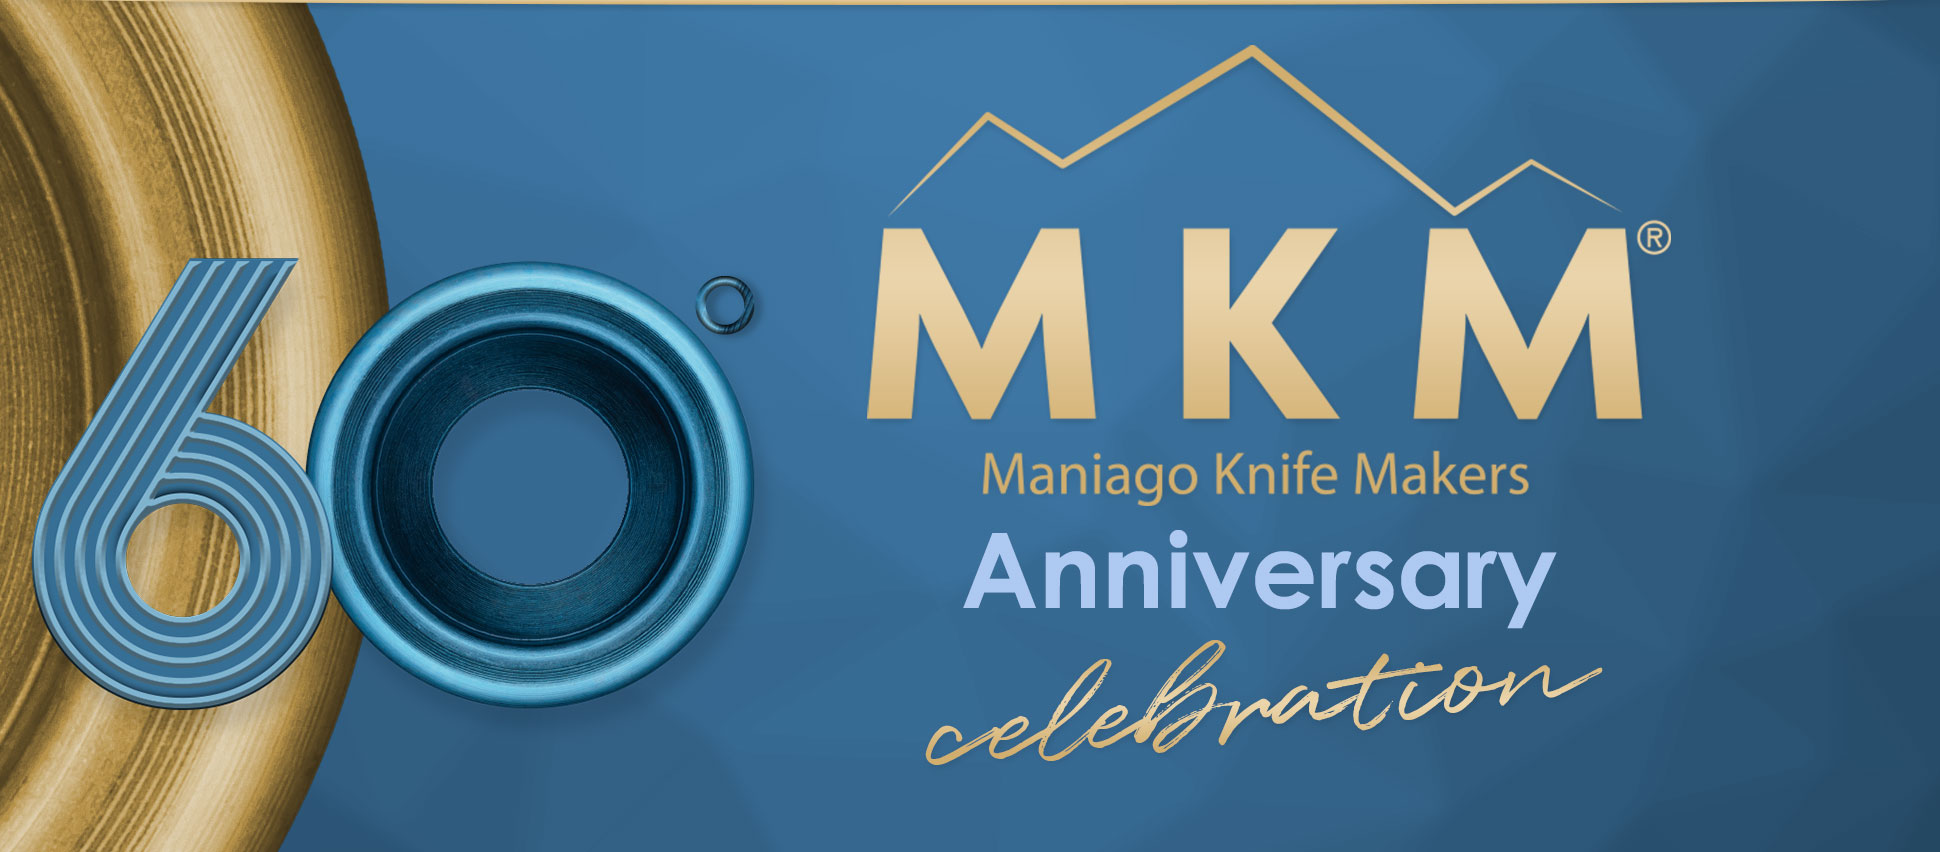 60 years of Maniago Knife Makers